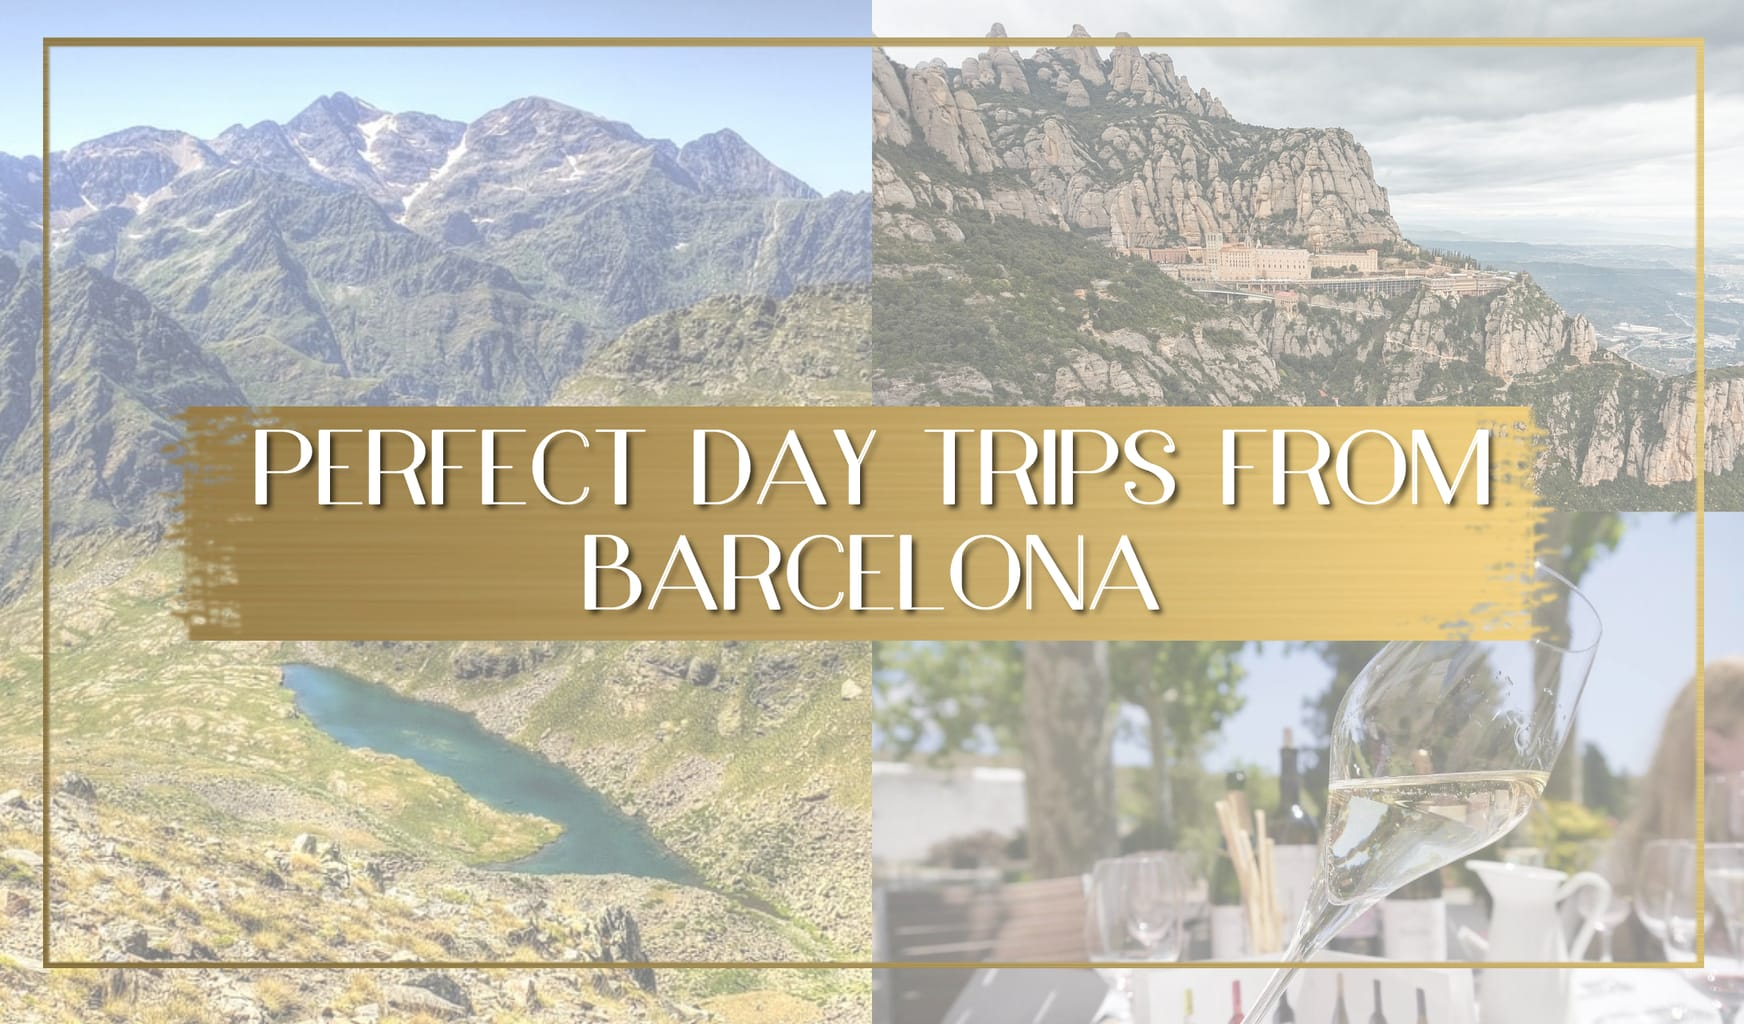 Day trips from Barcelona main